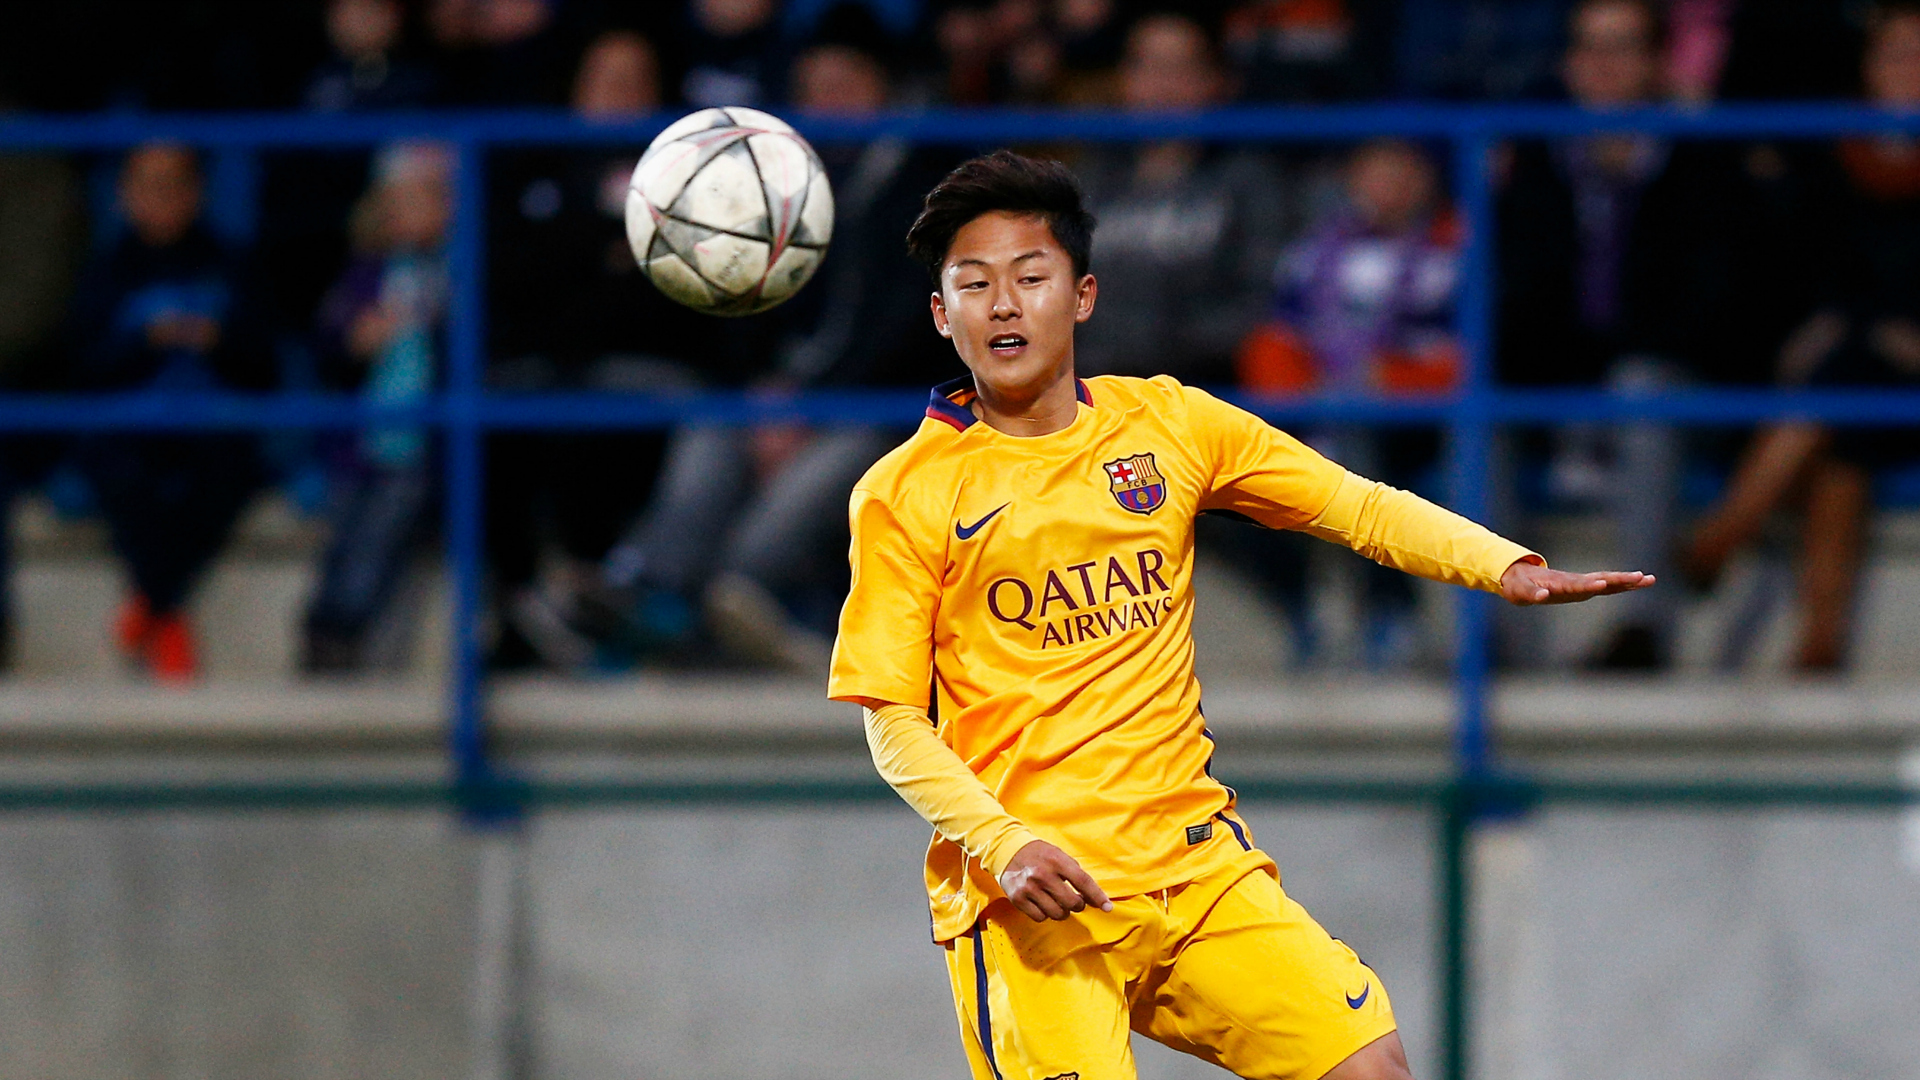 Borussia Dortmund interested in signing Barcelona youngster Lee Seung-woo